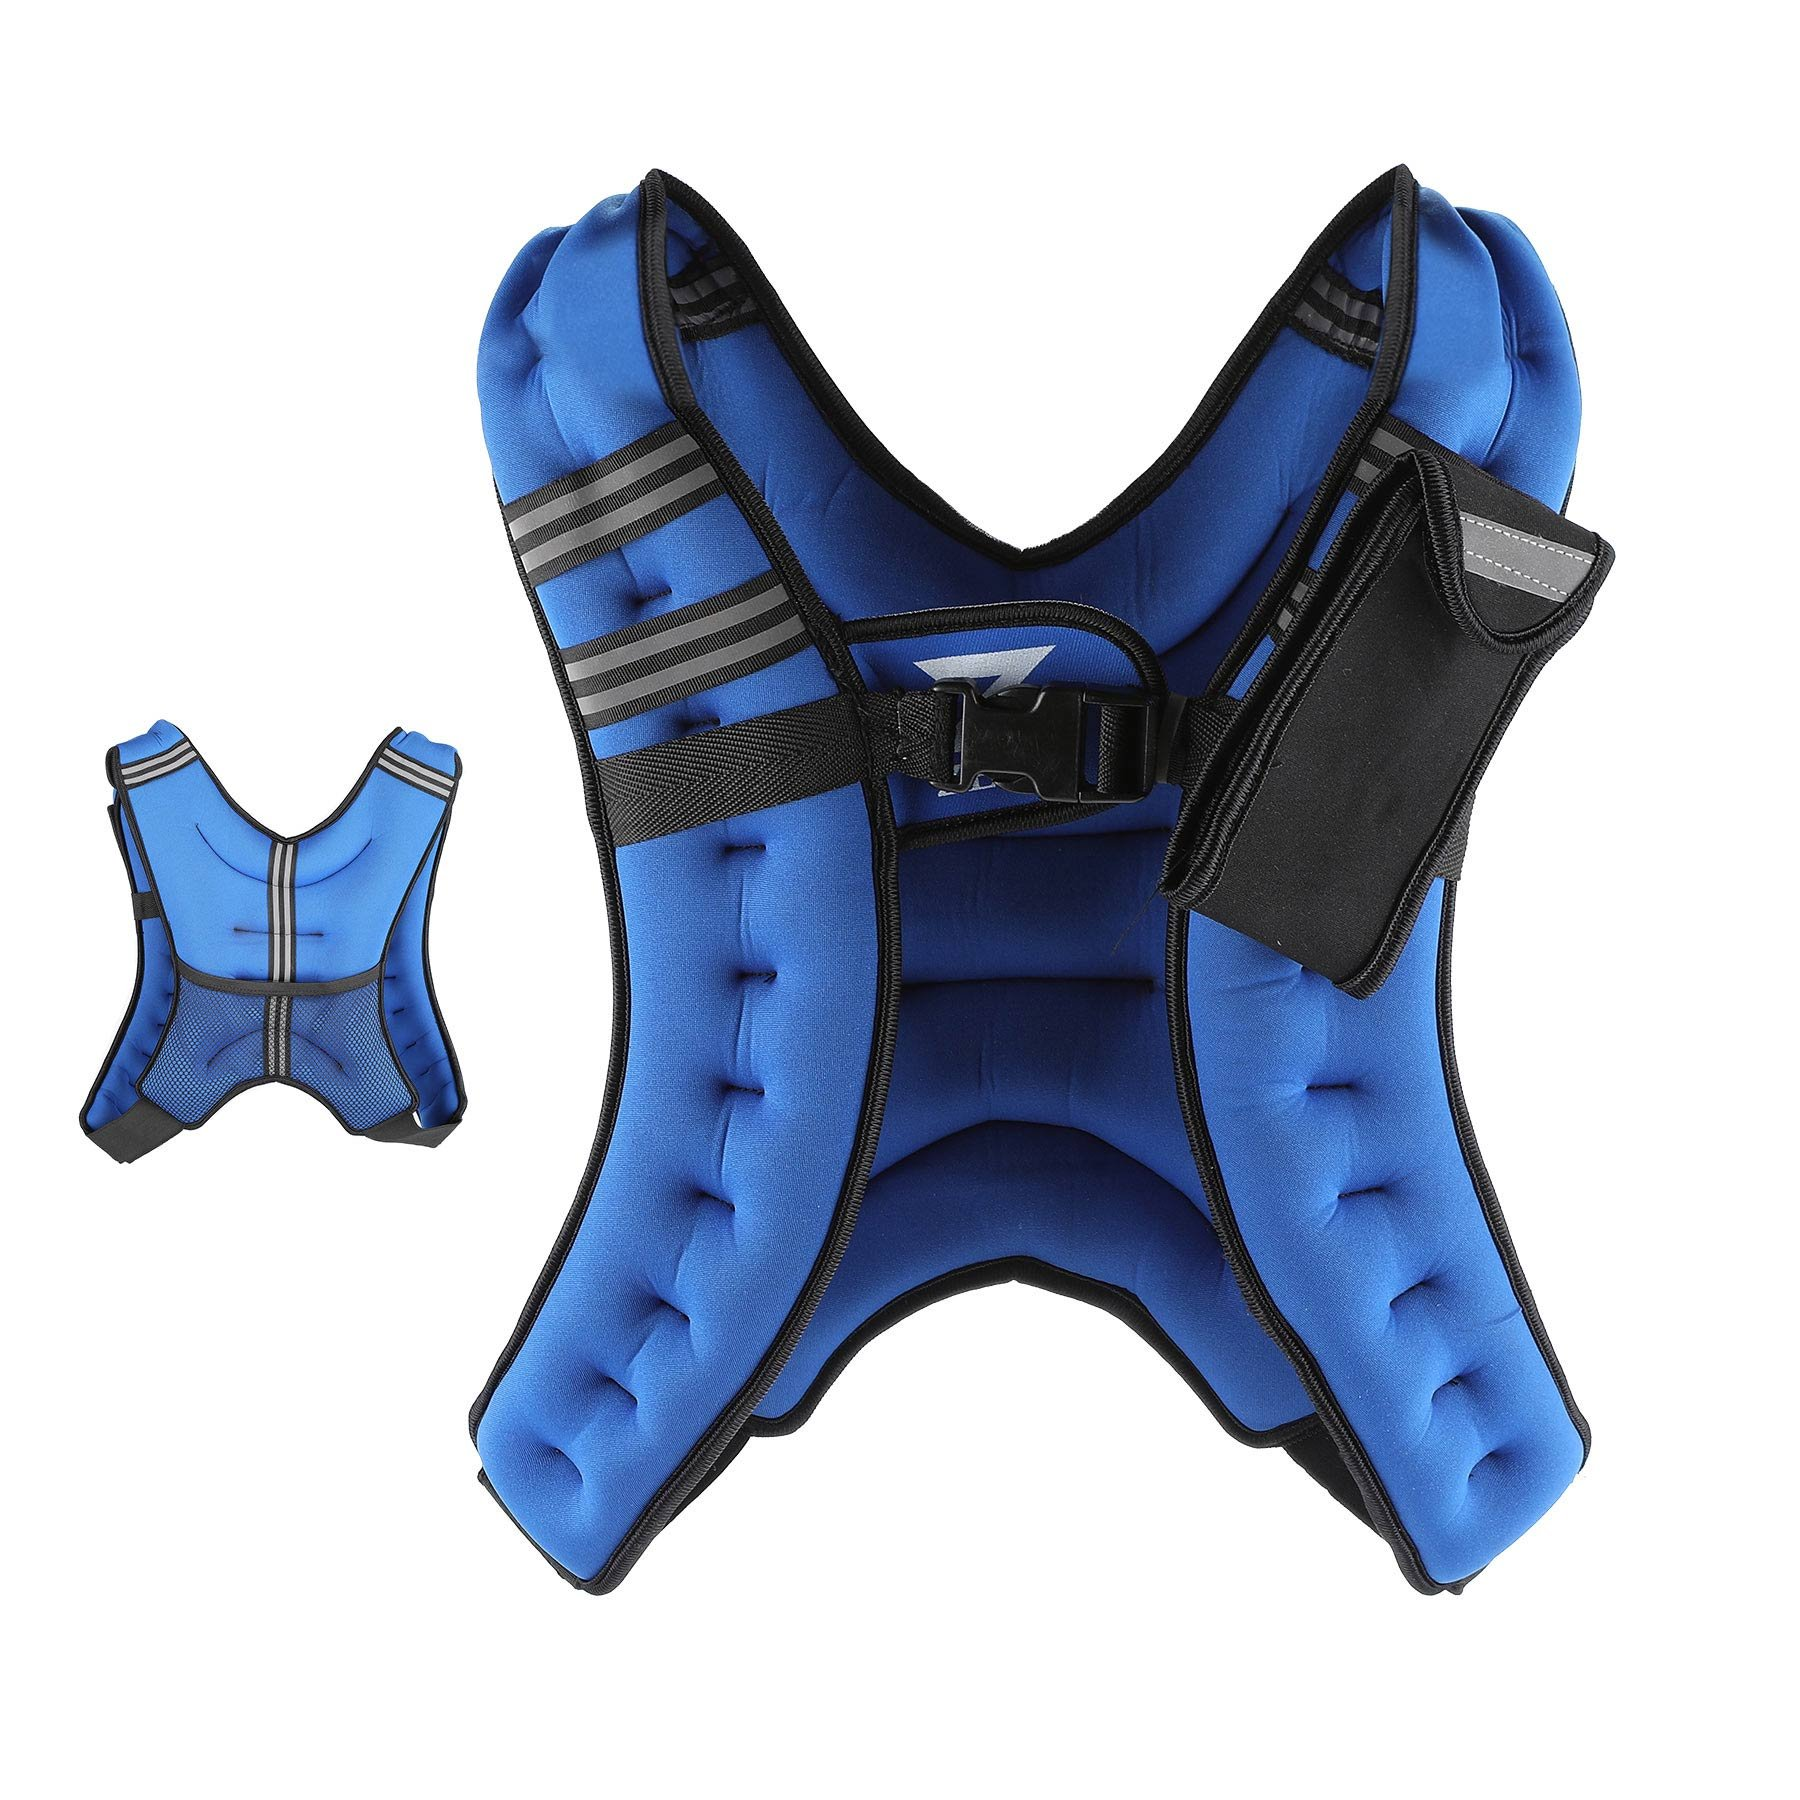 ZELUS Weighted Vest 12 lbs. Weight Vest with Reflective Stripe for Workout, Strength Training, Running, Fitness, Muscle Building, Weight Loss, Weightlifting - Blue